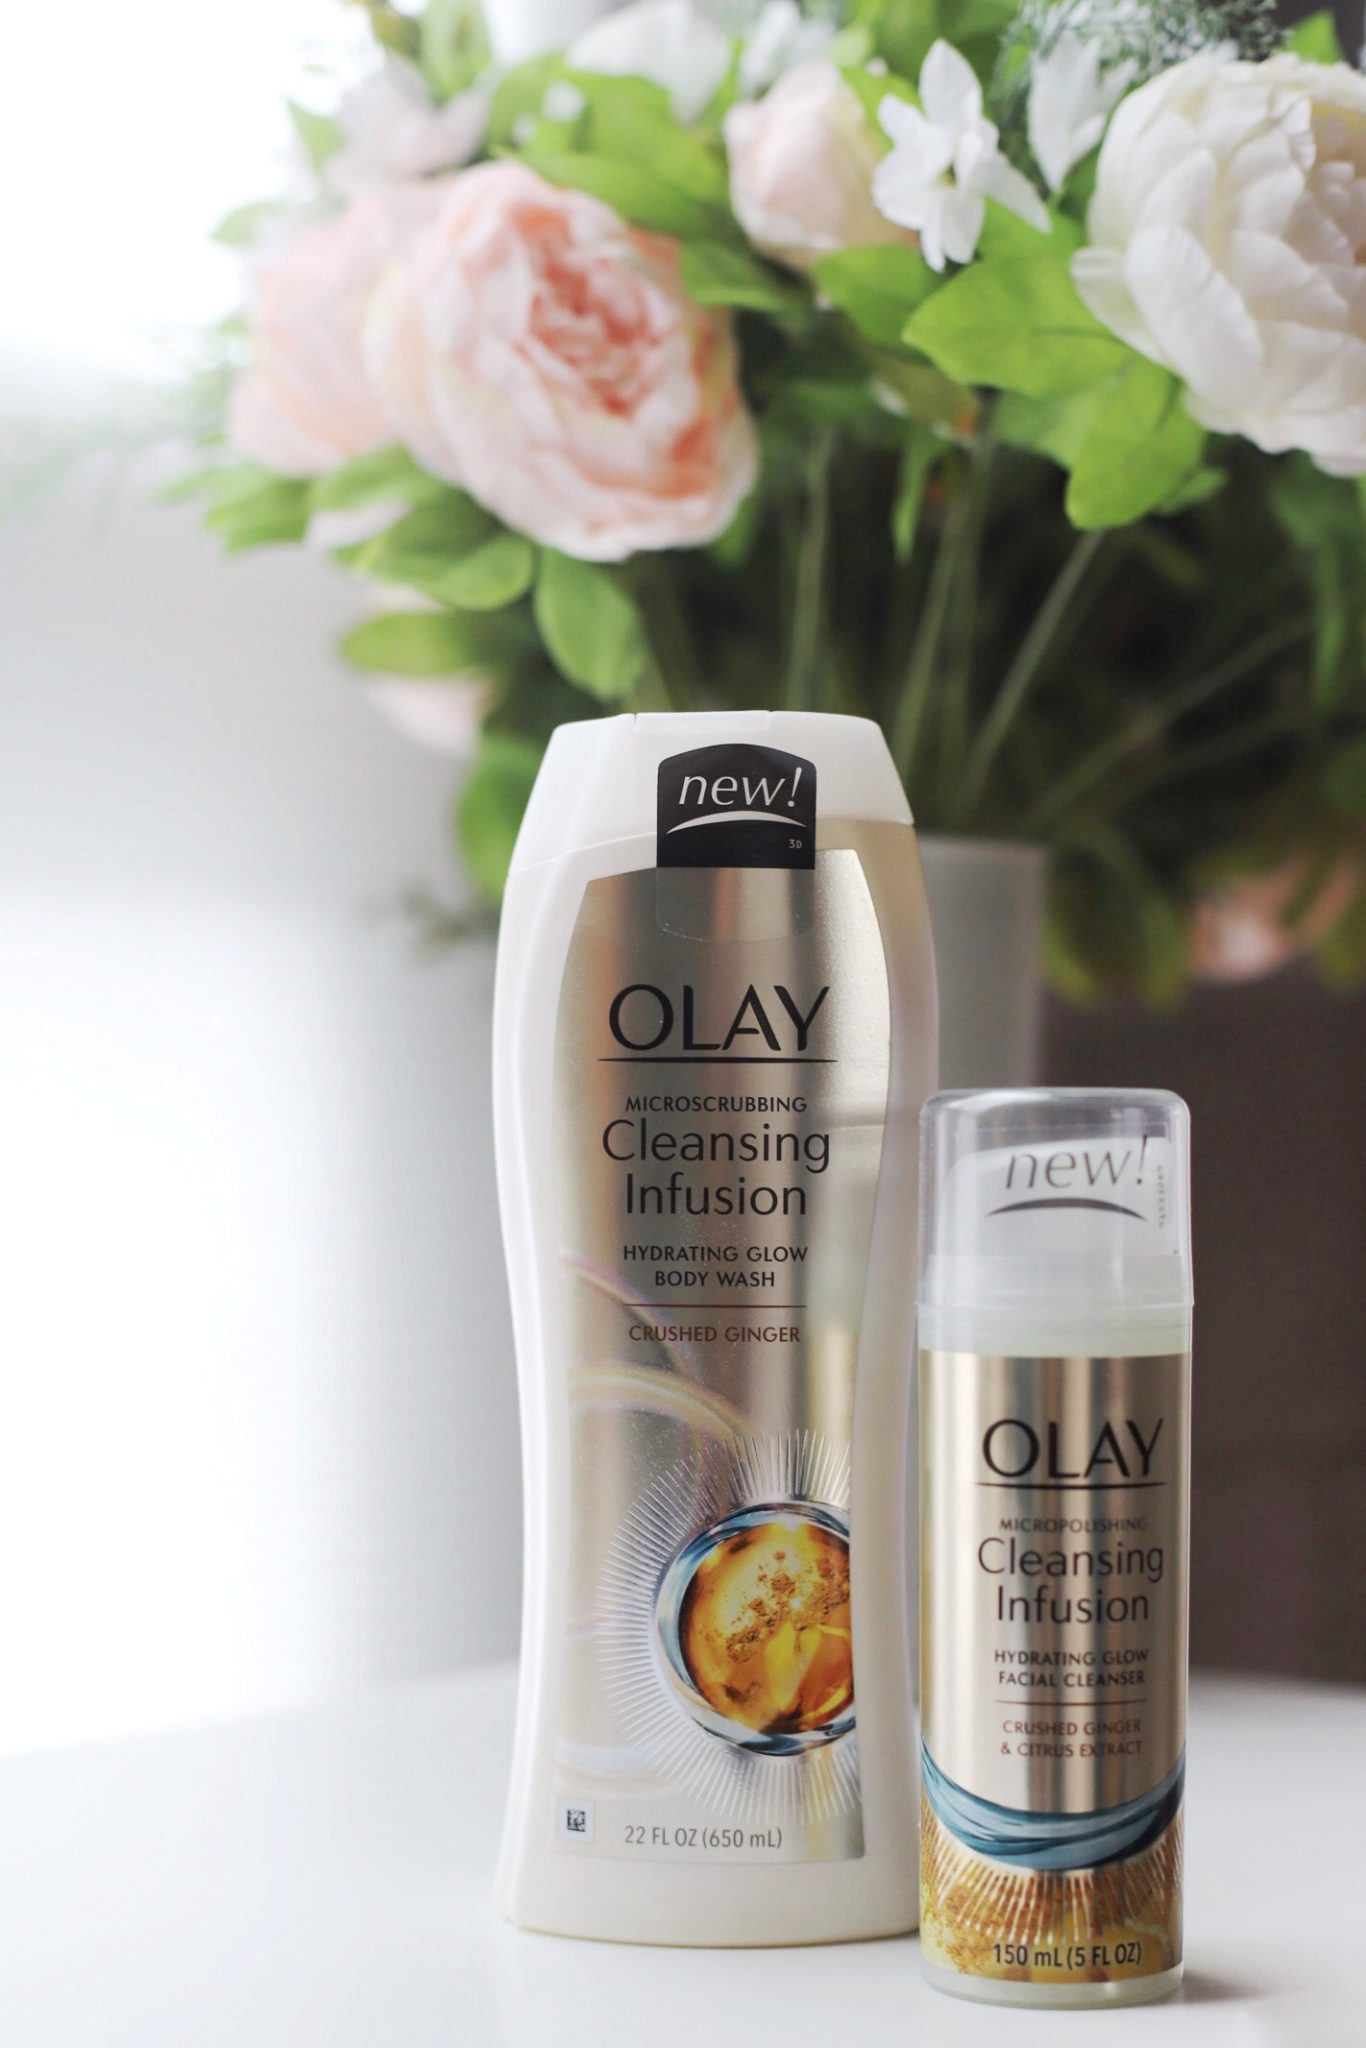 beach glow, beach prep, best body wash, Olay Microscrubbing Cleansing Infusion Hydrating Glow, sunless tanning